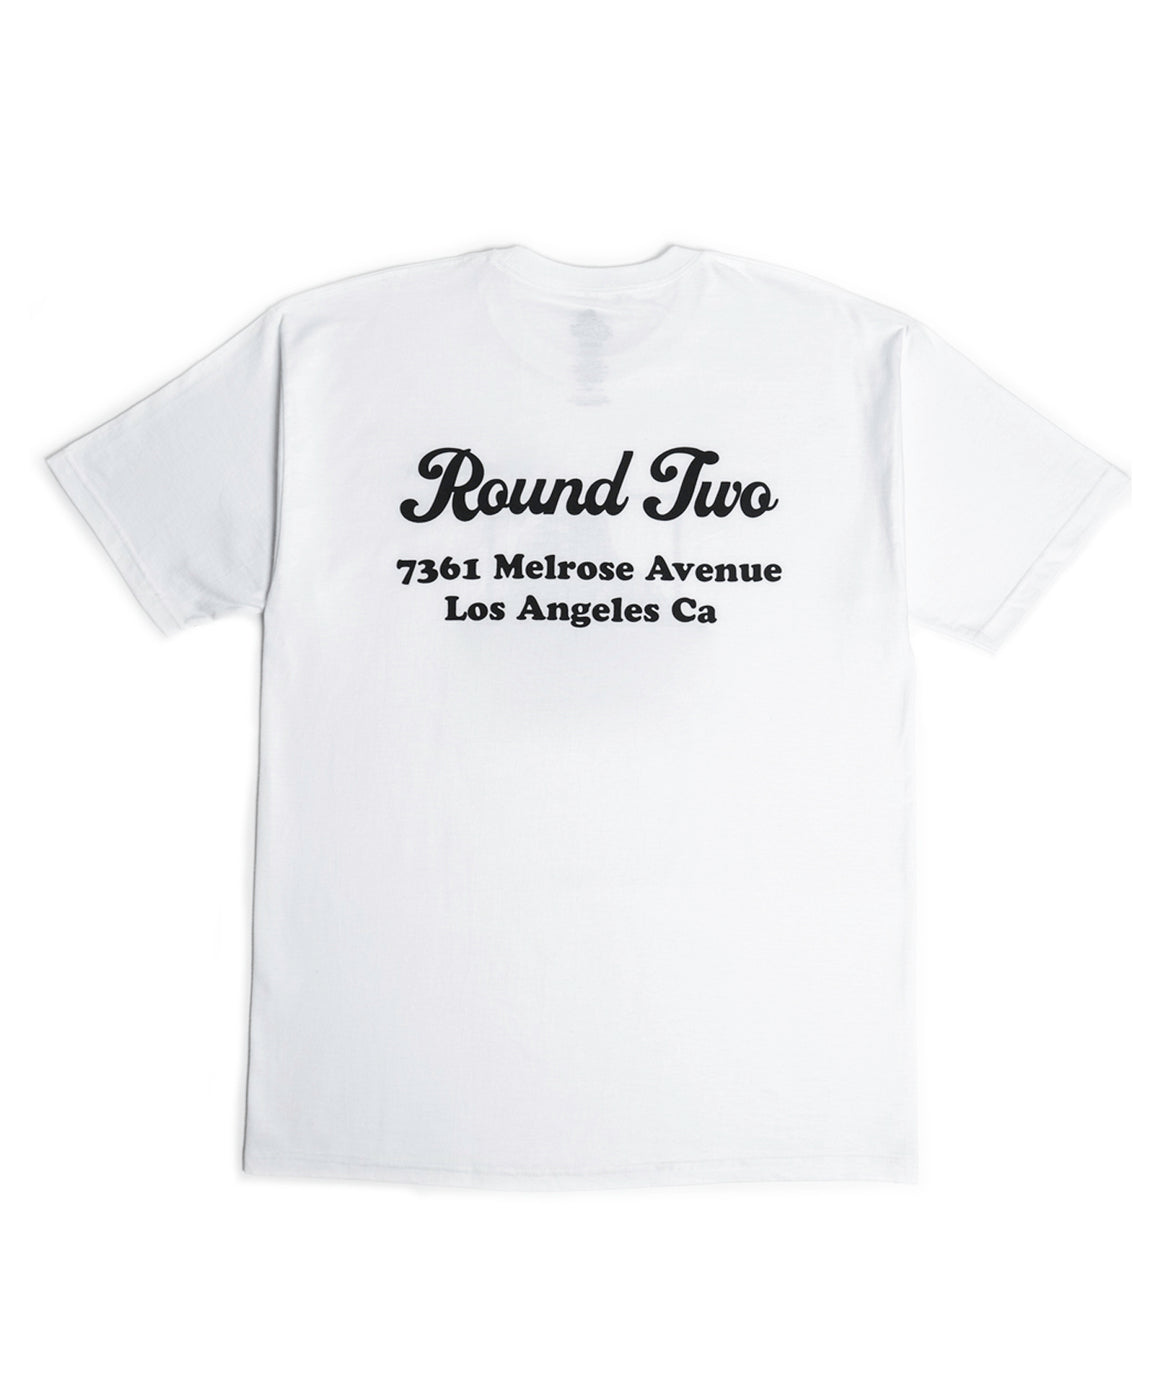 OG&ROUND TWO SS TEE